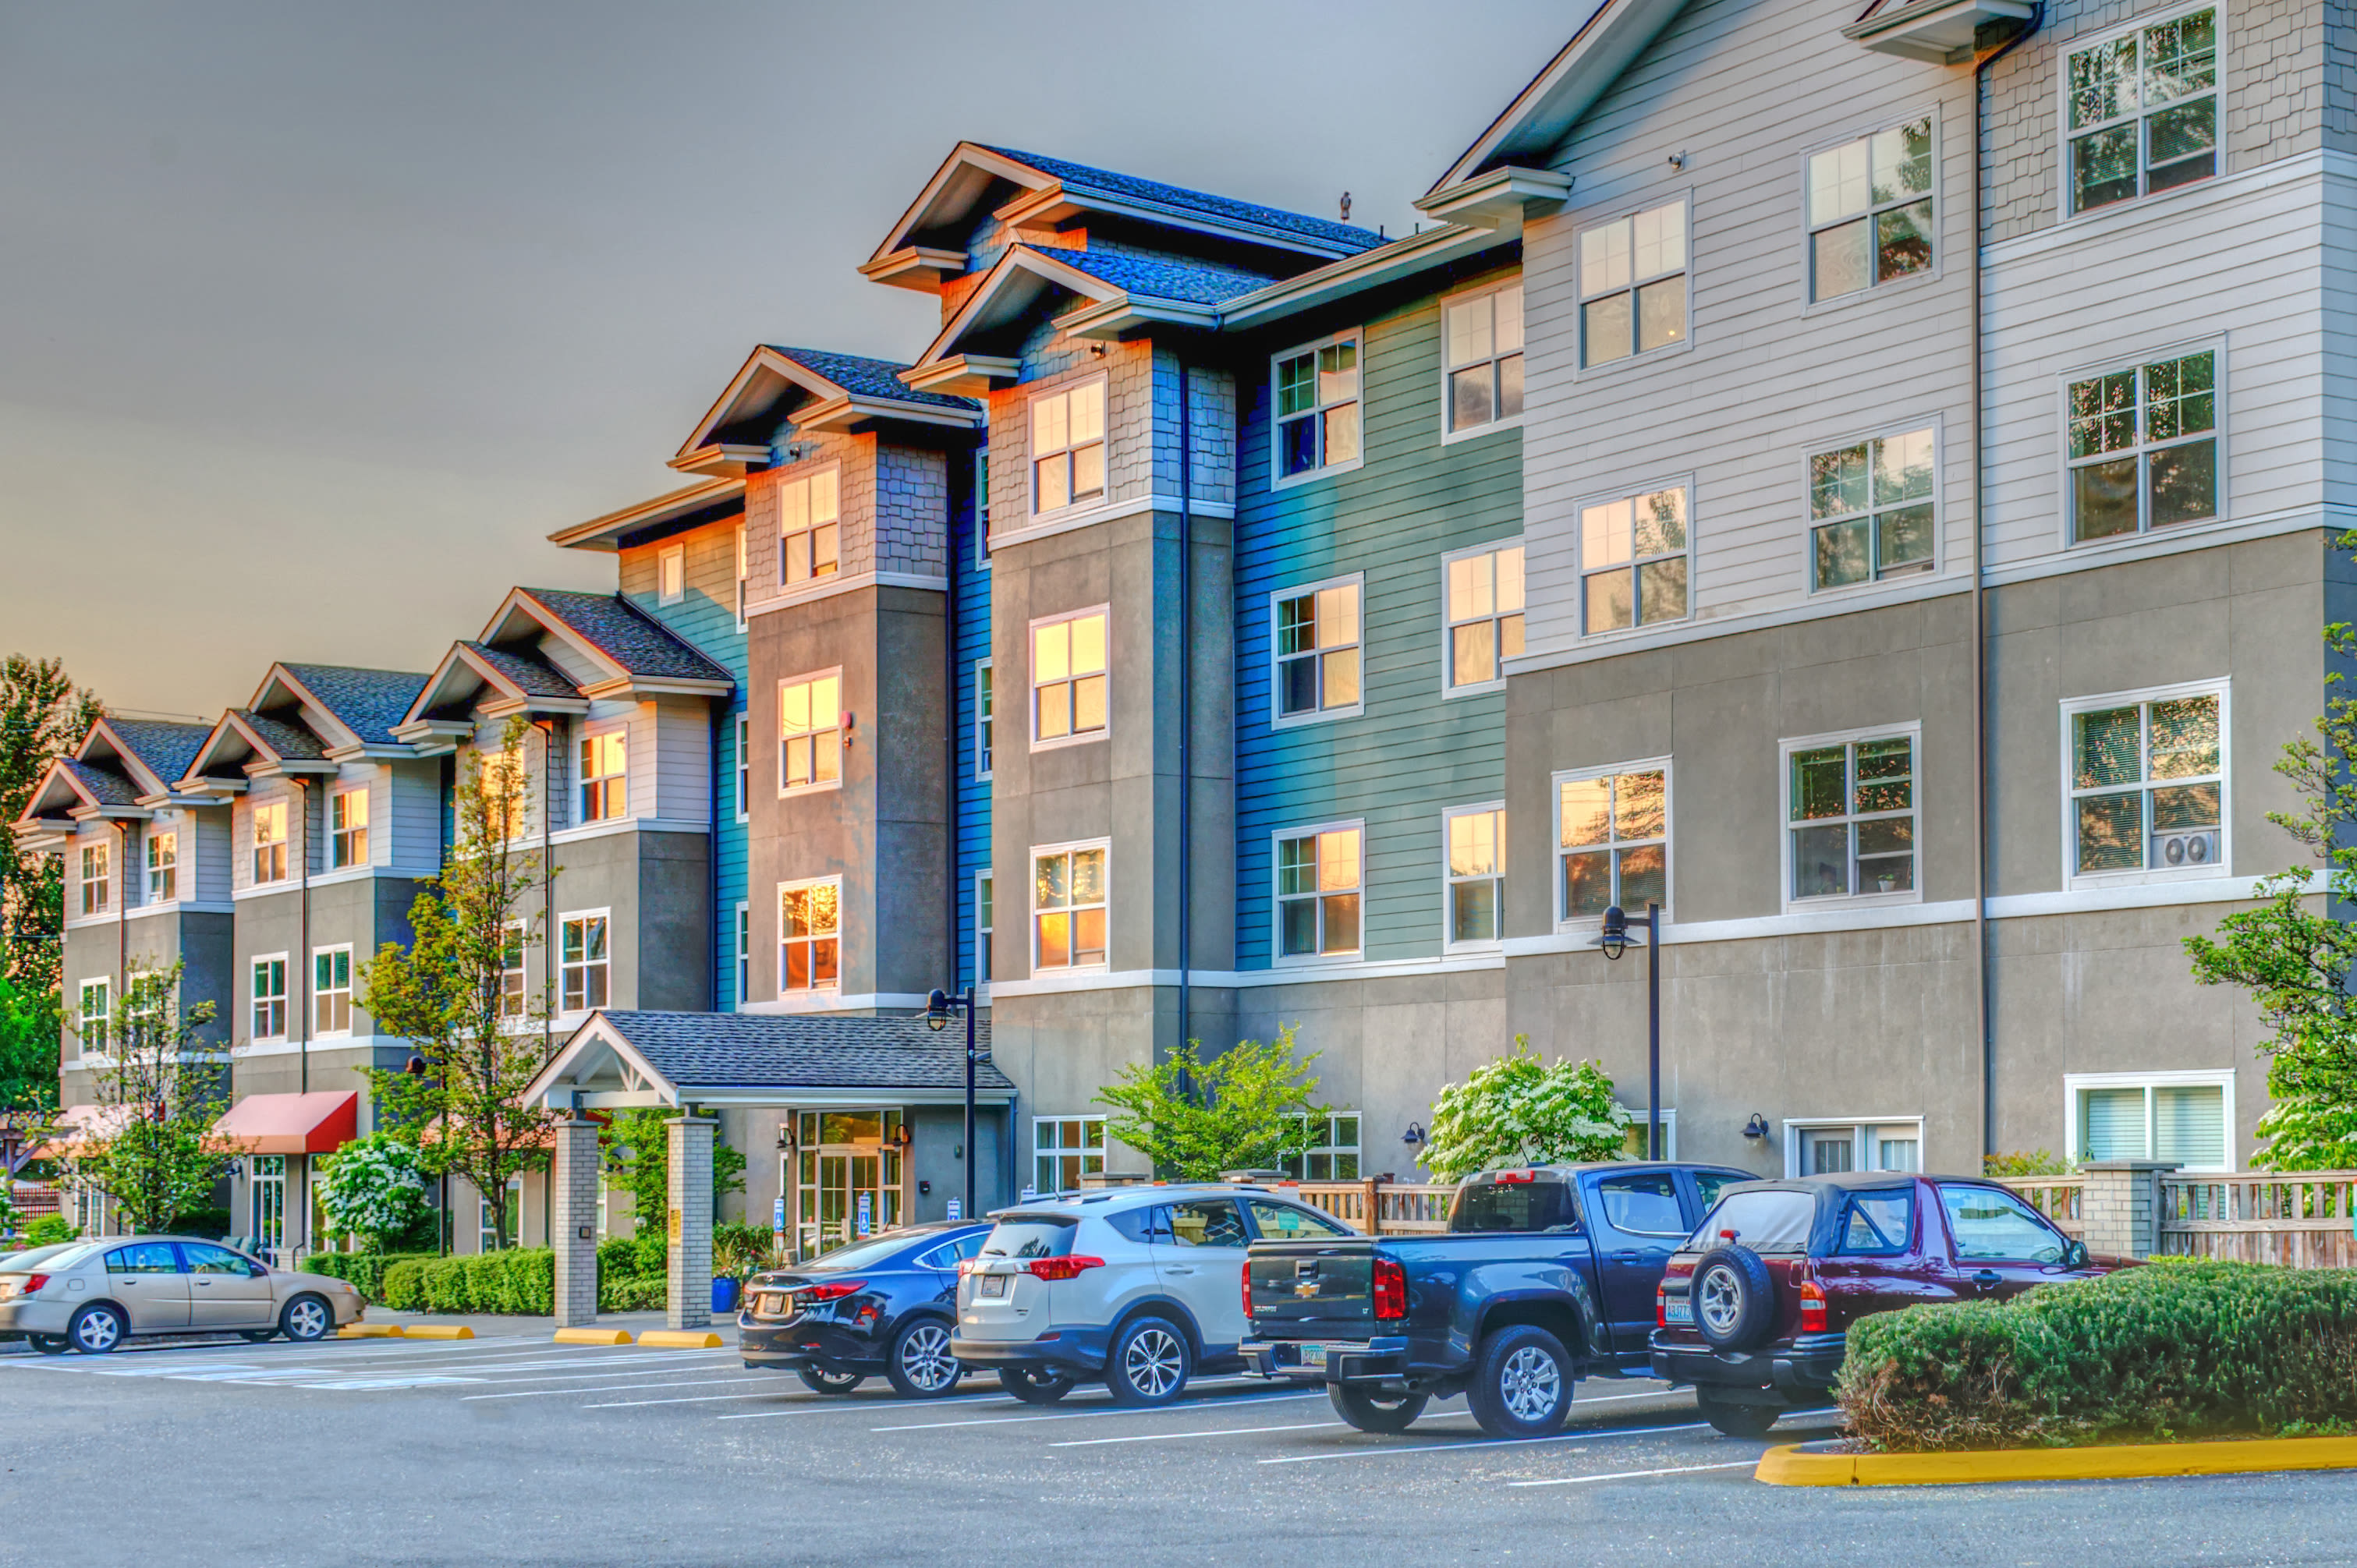 Our community at the senior living facility in Woodinville